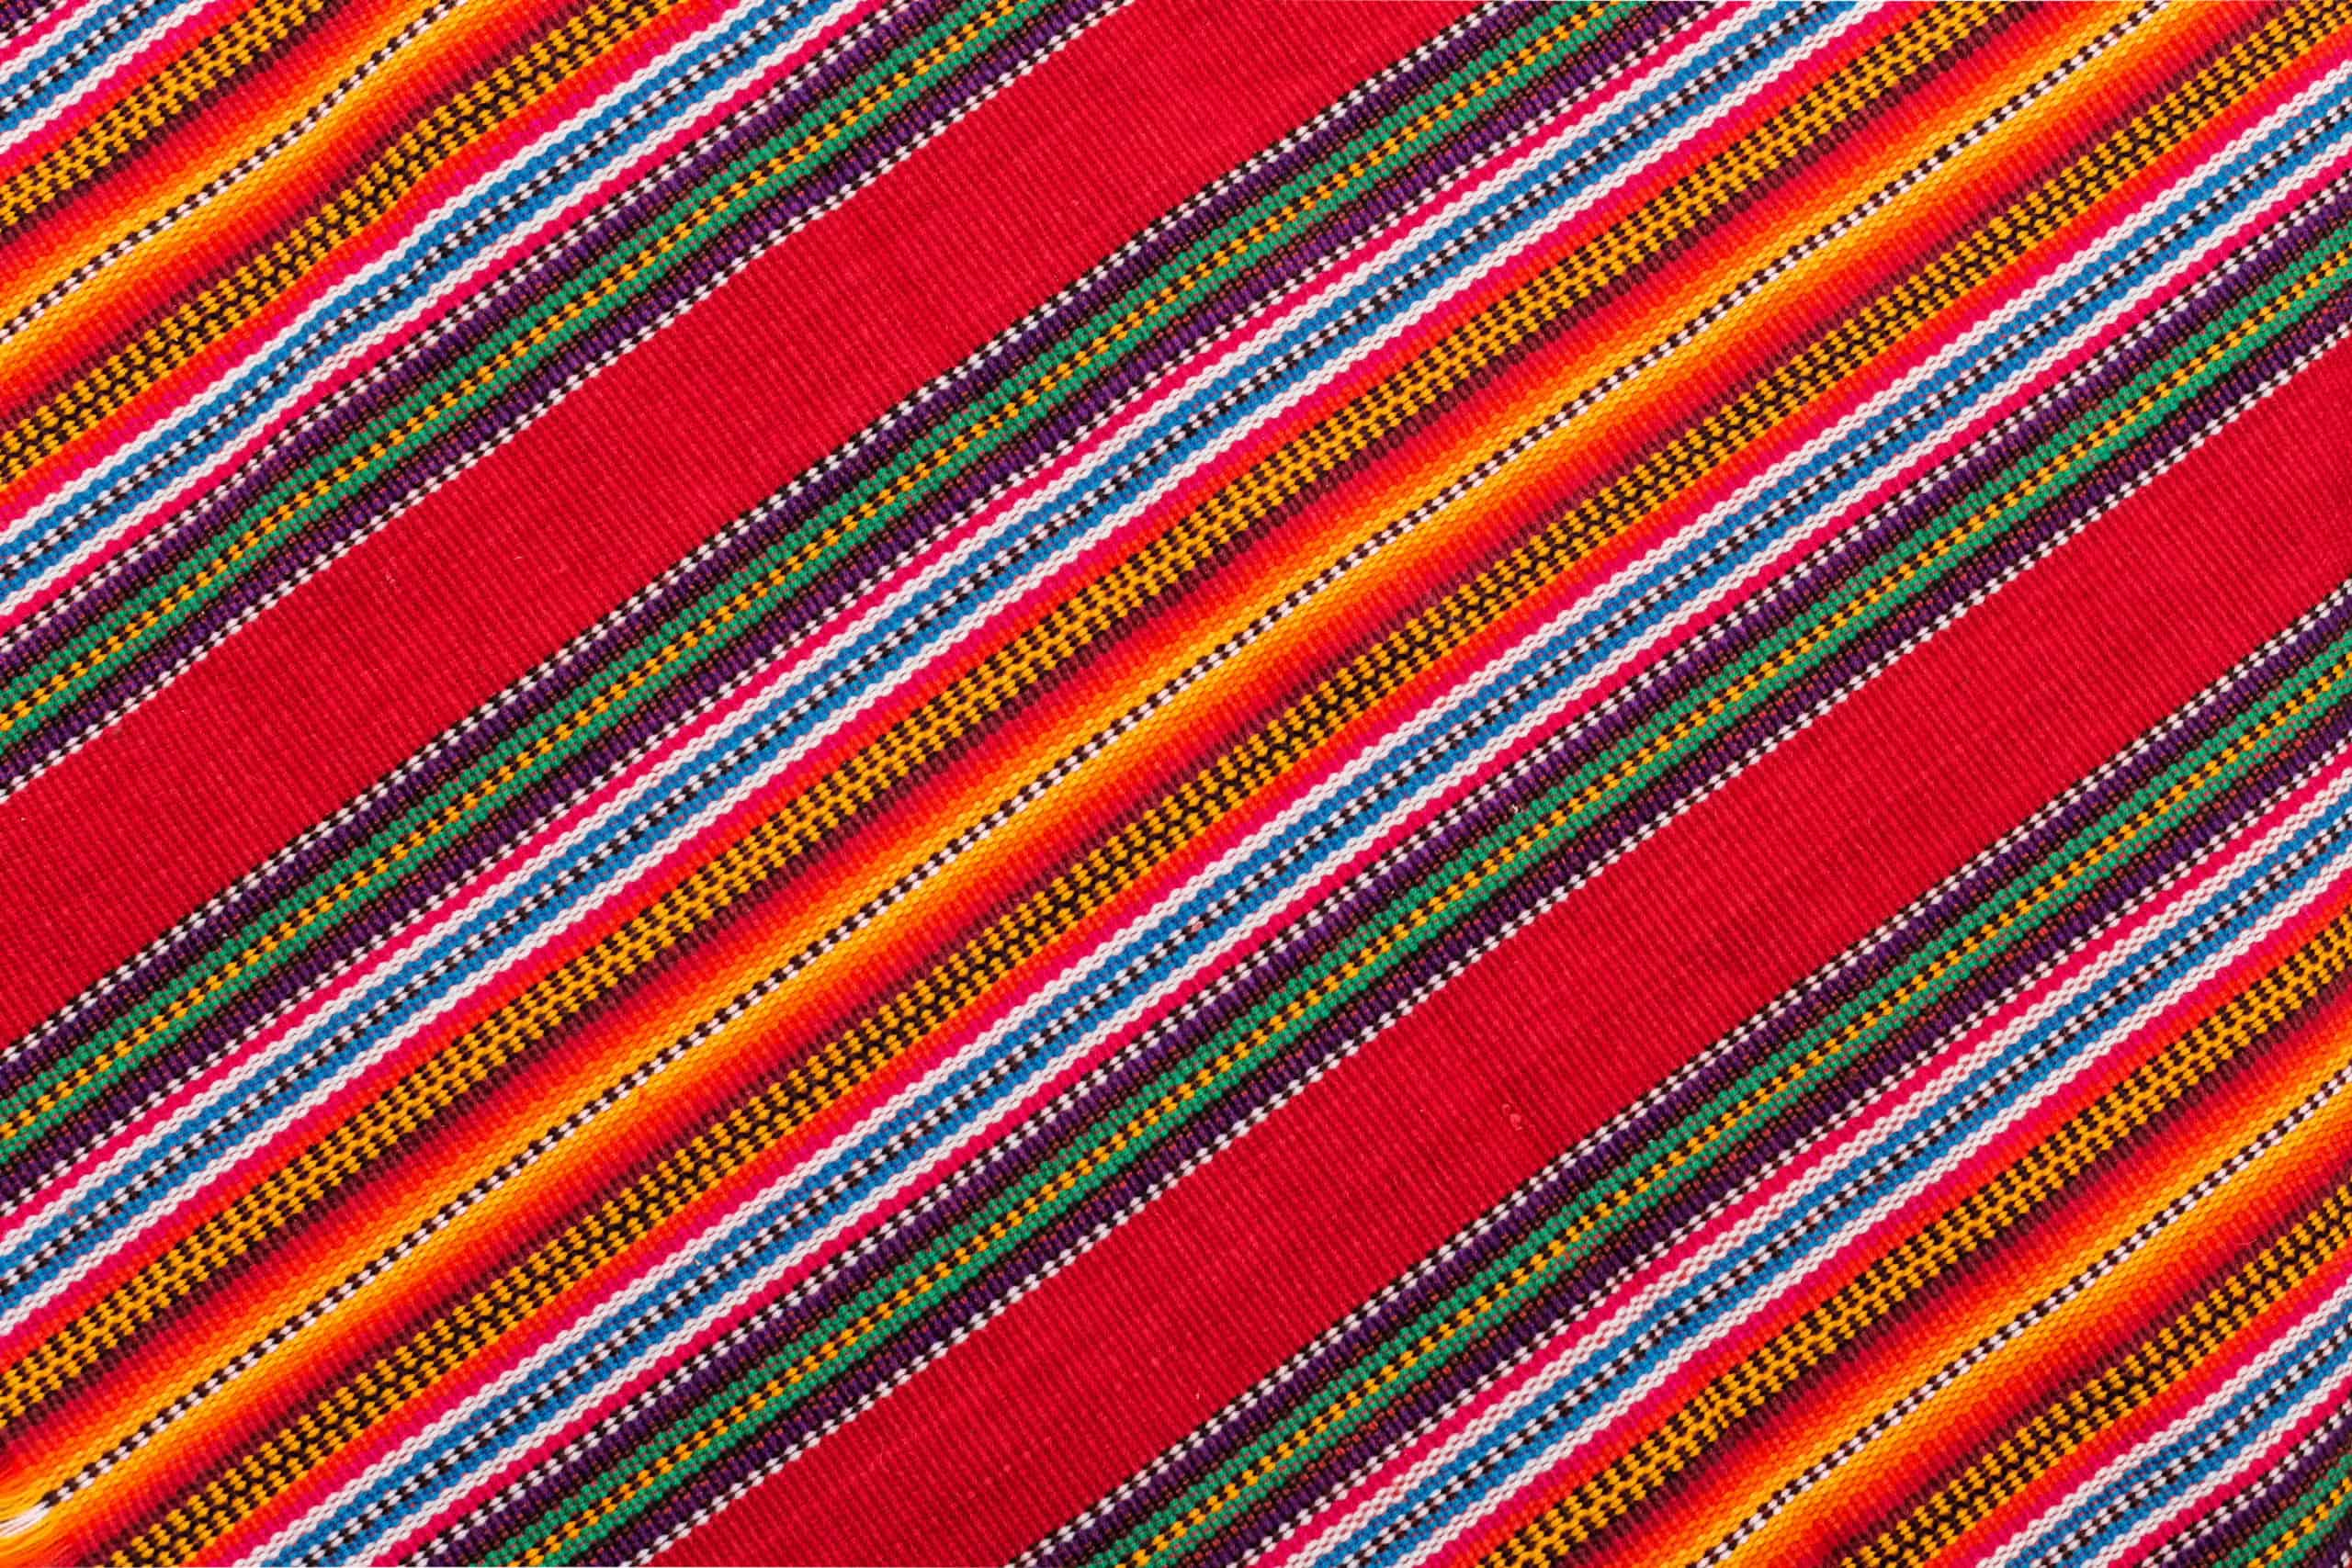 A colorful woven textile pattern.